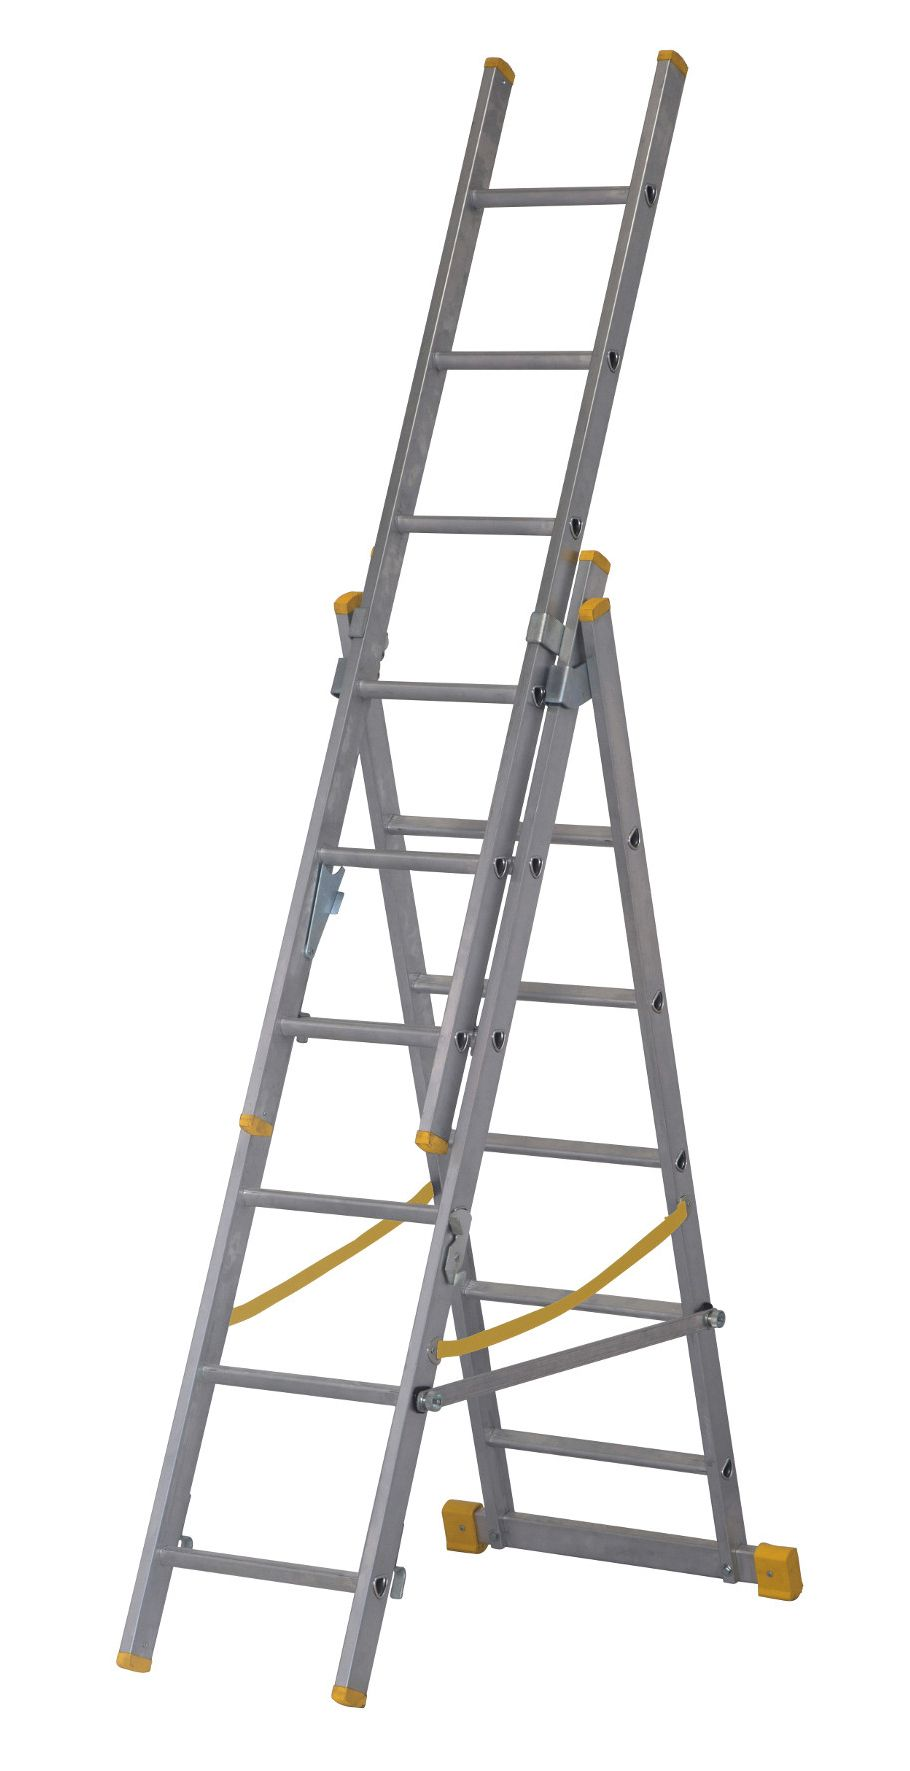 Youngman Combi 100 4 Way Combination Ladders